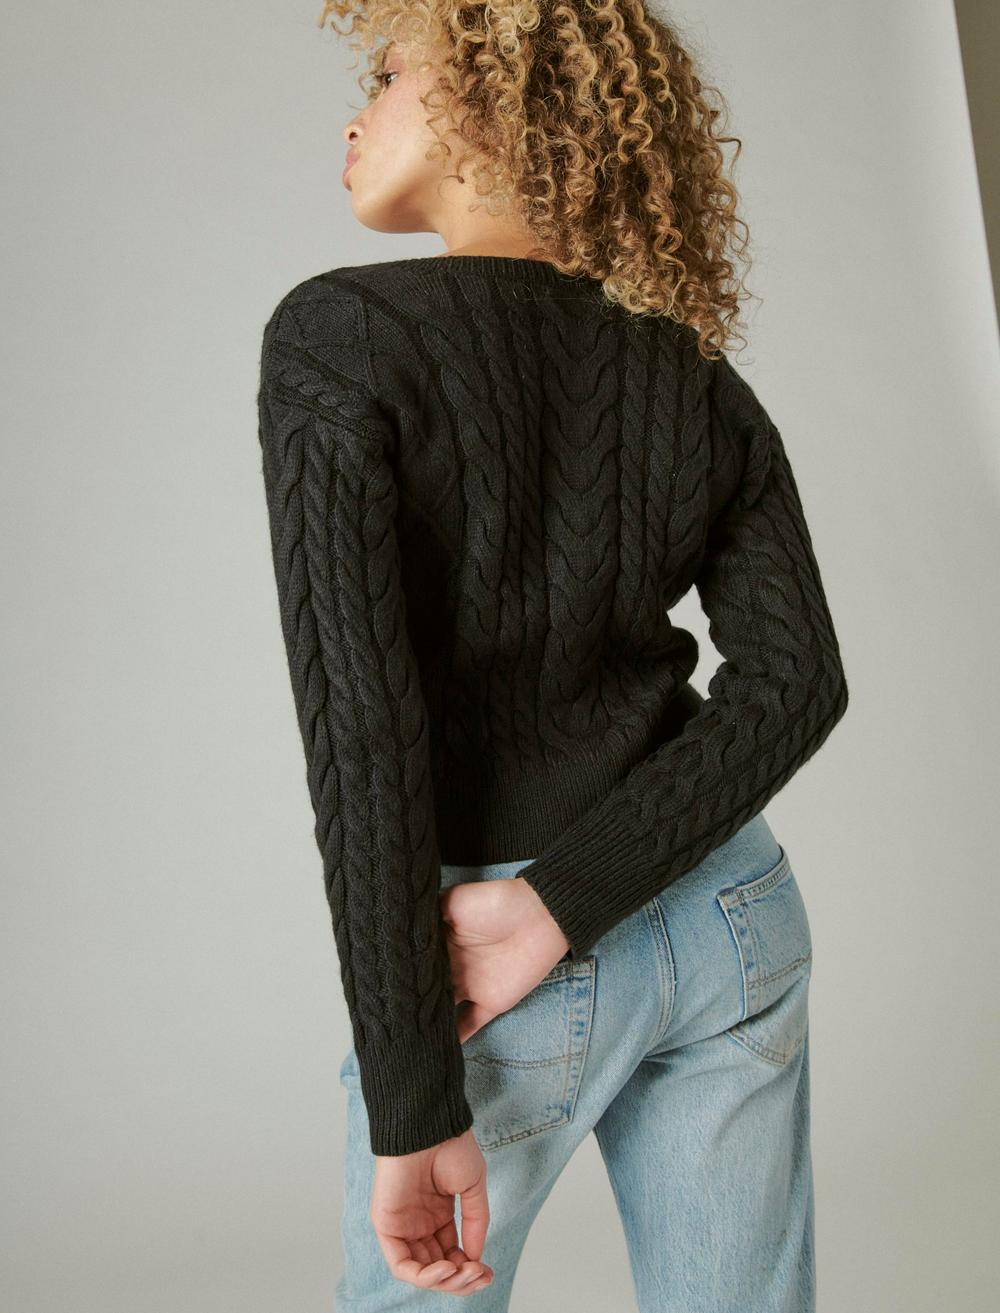 CABLE CARDIGAN TOP, image 4